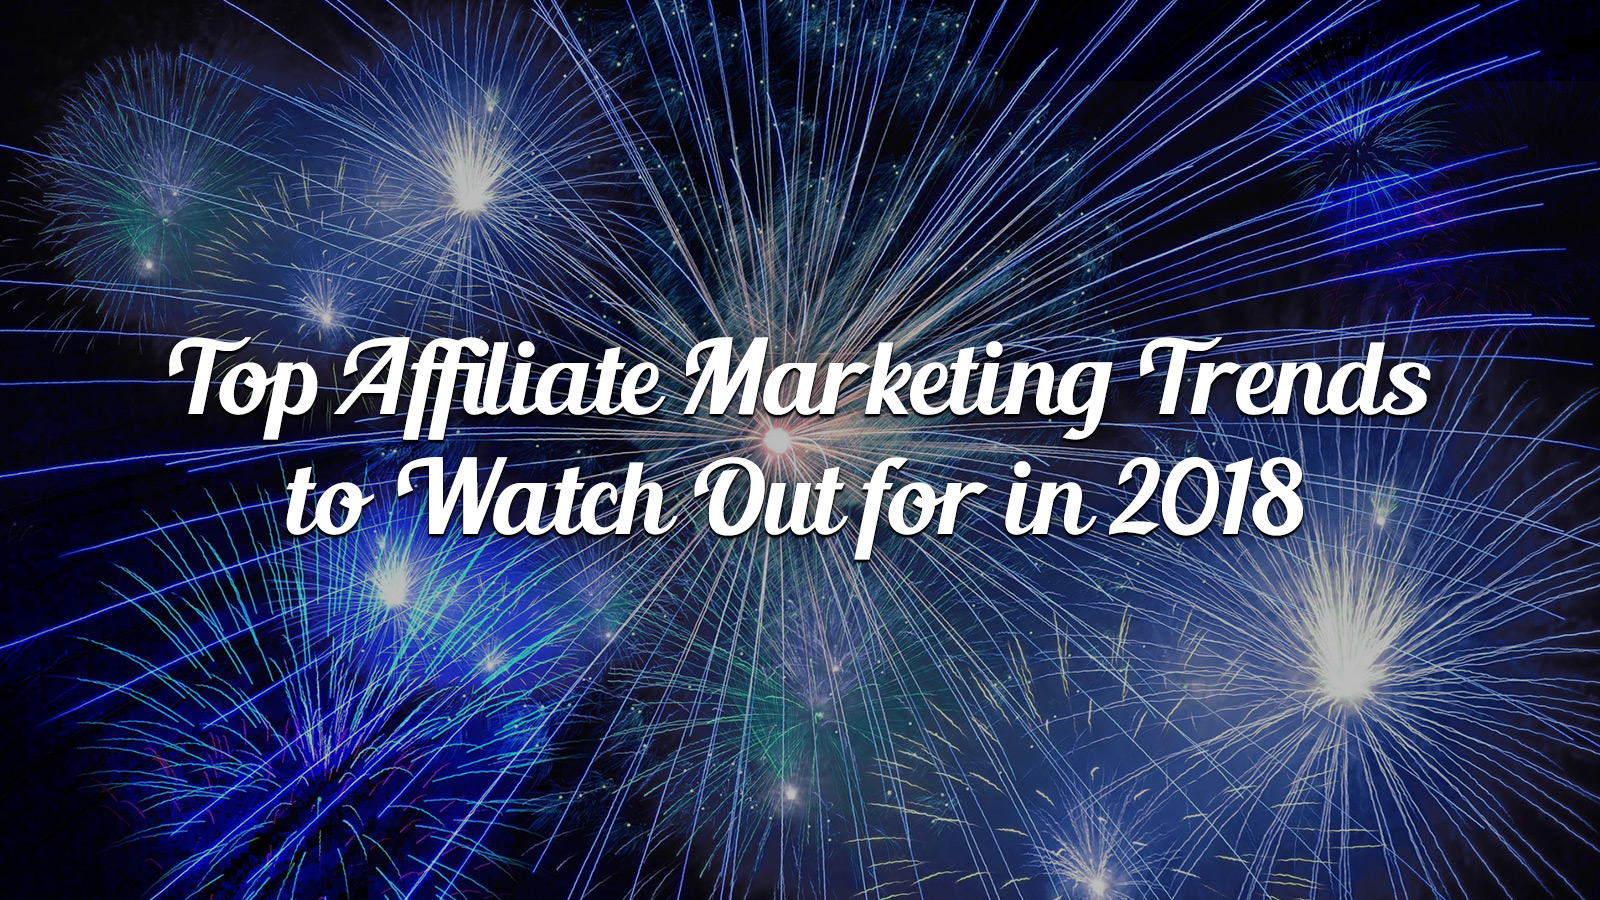 Top Affiliate Marketing Trends to Watch Out for in 2018